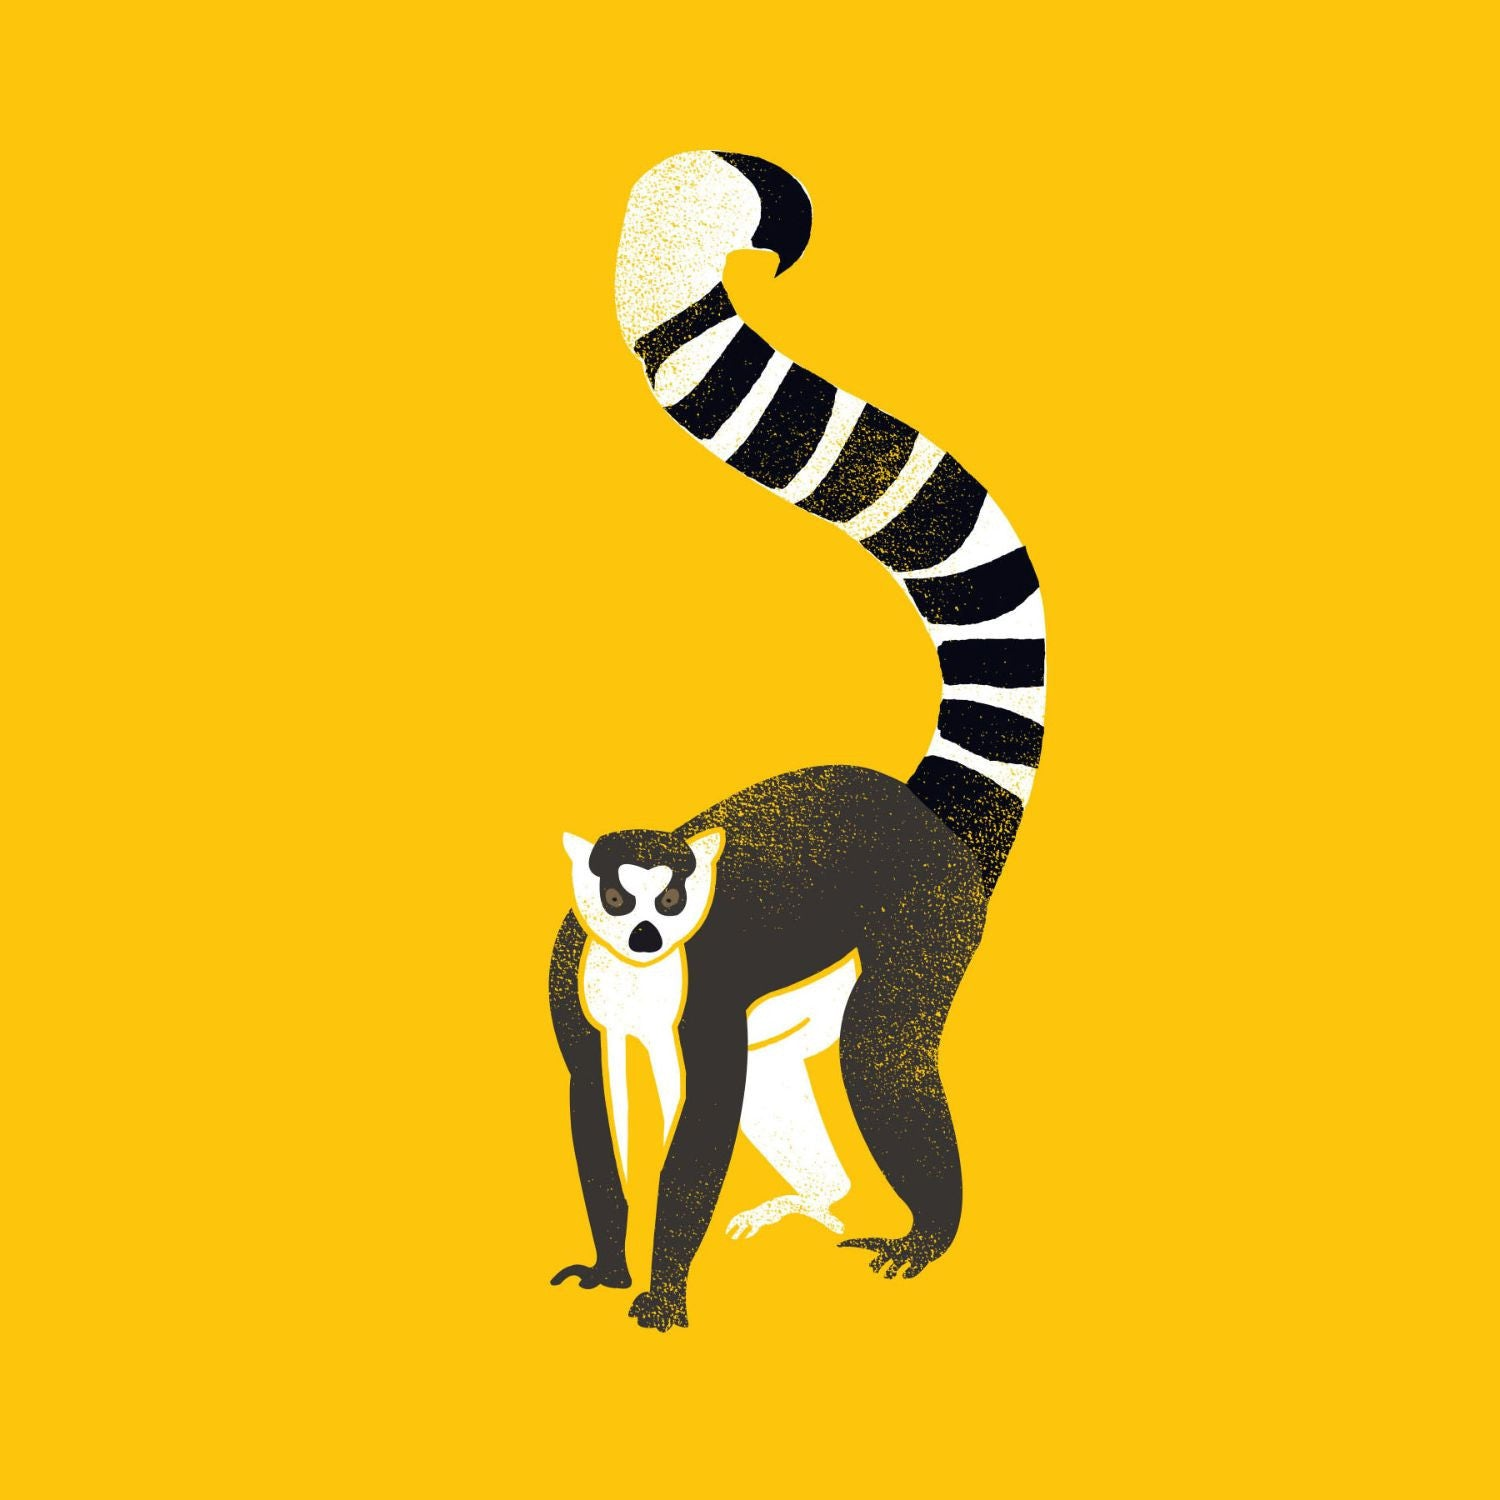 Ring Tailed Lemur - Canvas Prints by Hamid Raza | Buy Posters ...